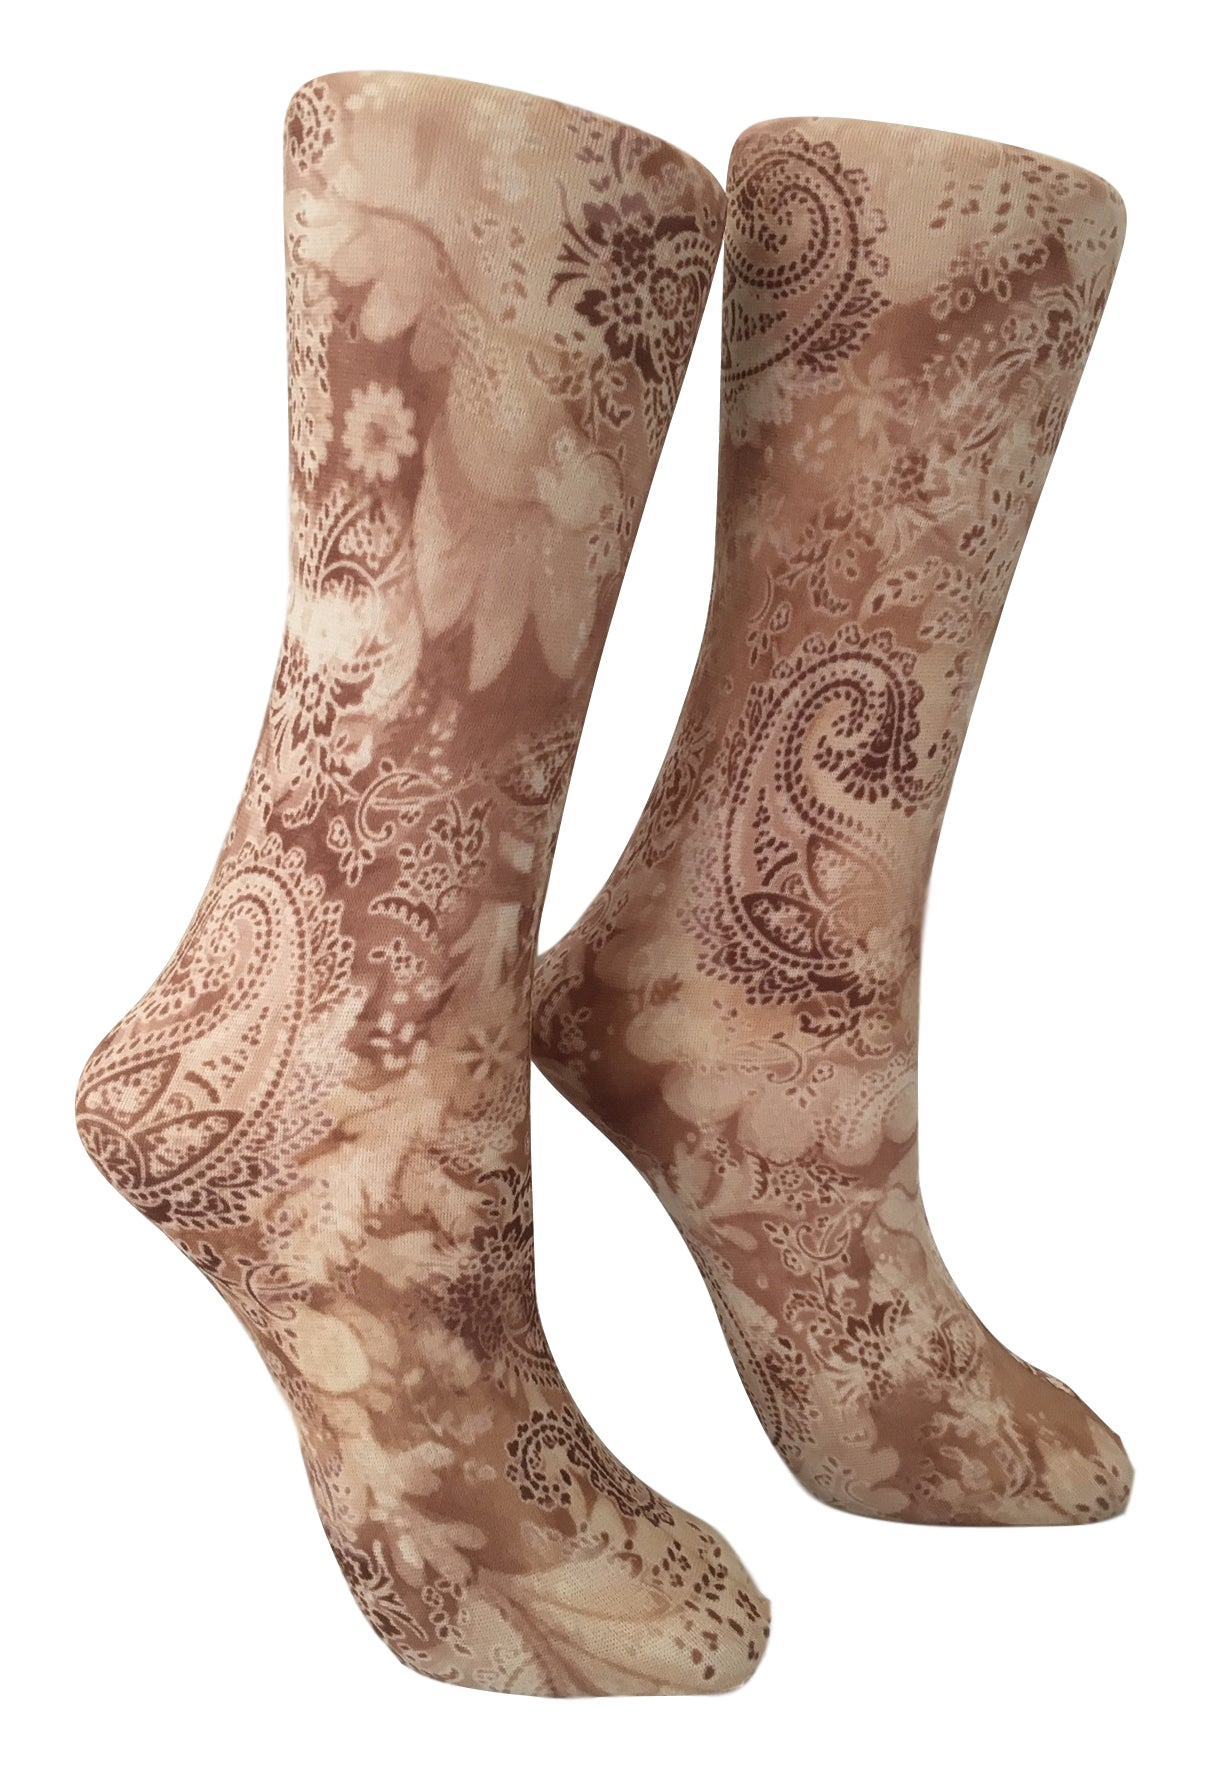 Soxtrot Knee High - Cocoa Paisley